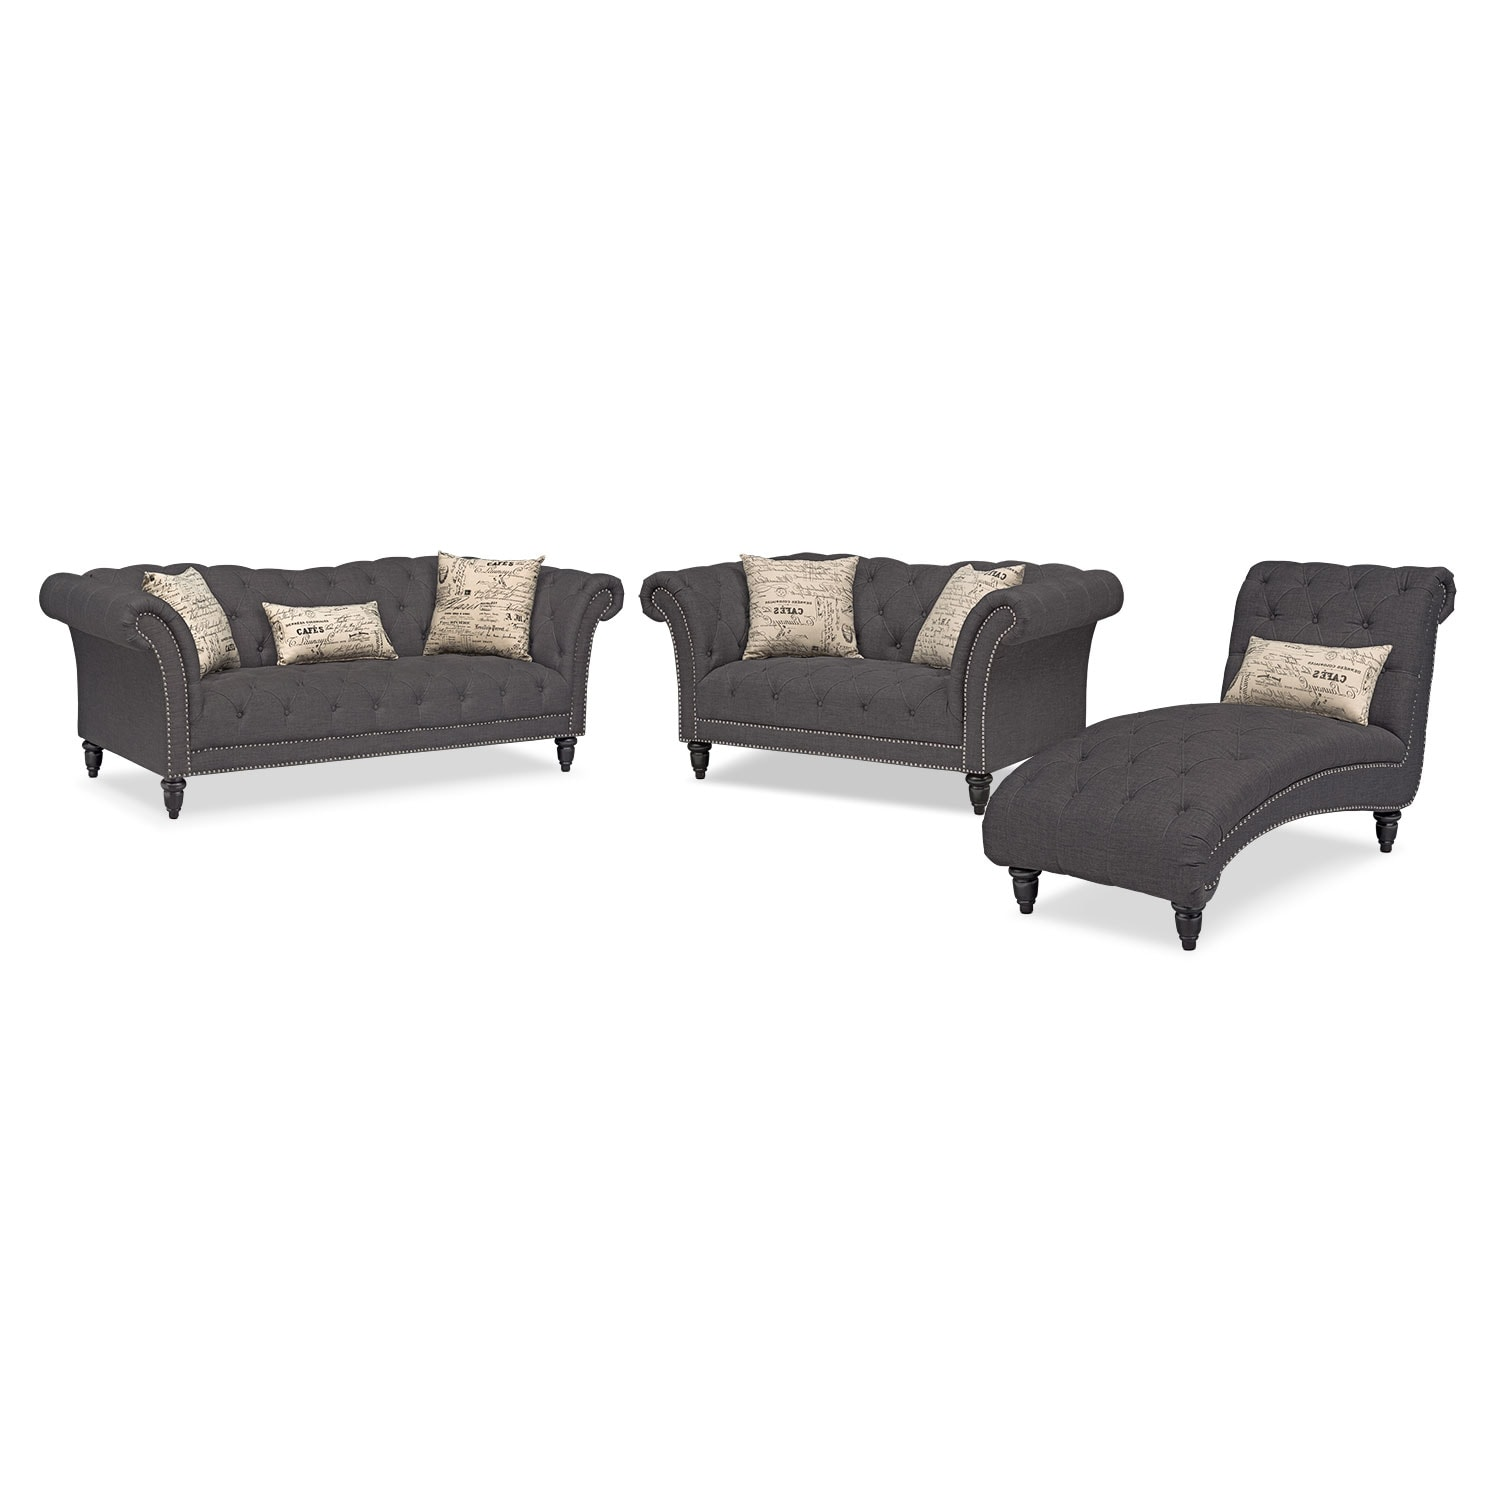 Marisol Sofa, Loveseat and Chaise Set - Charcoal